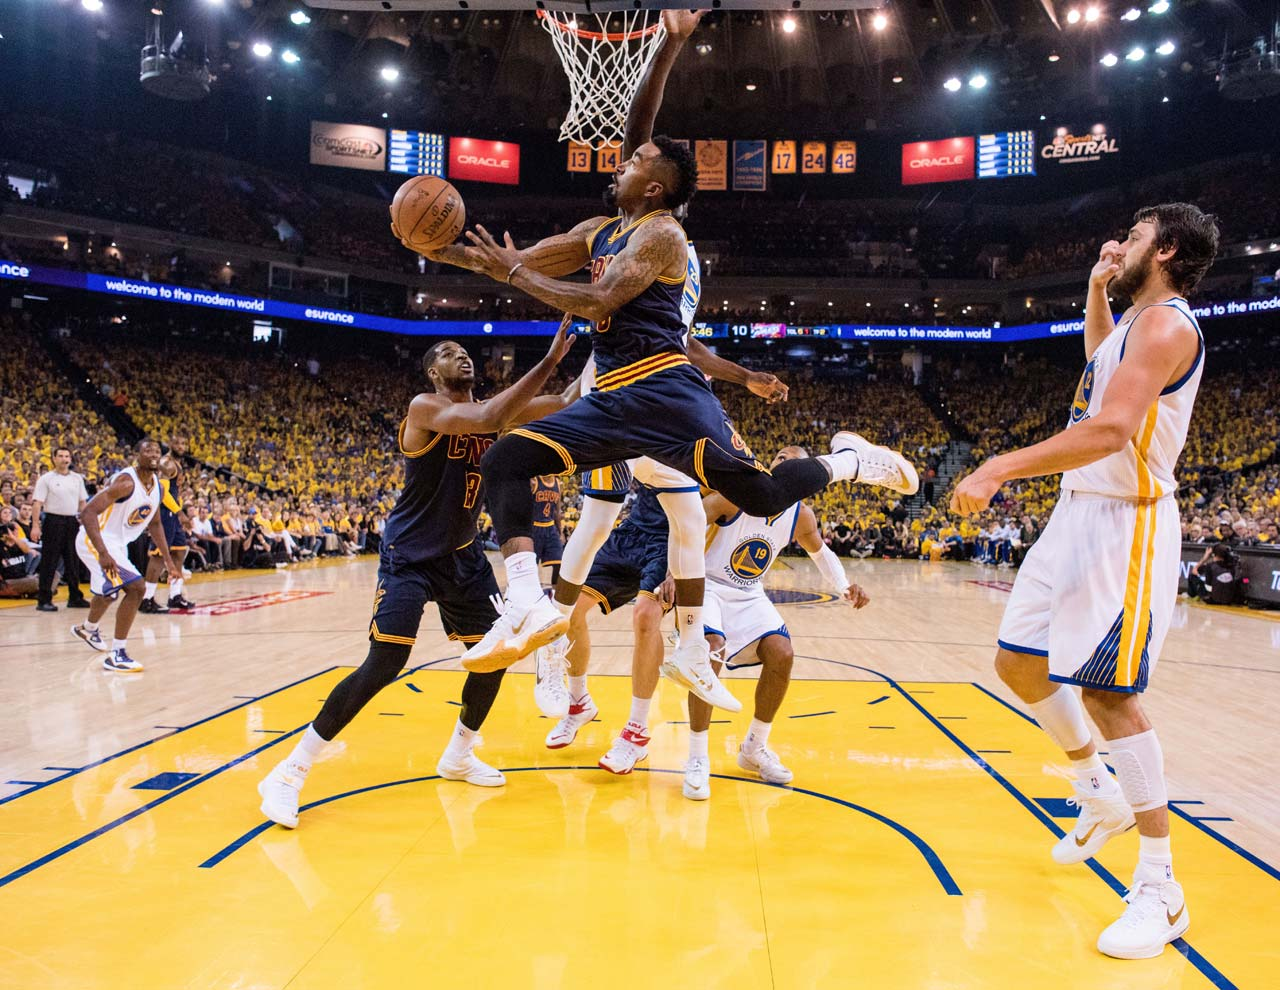 J.R. Smith was more aggressive at attacking the basket now that Kyrie Irving is lost to the Cavaliers for the remainder of the series.